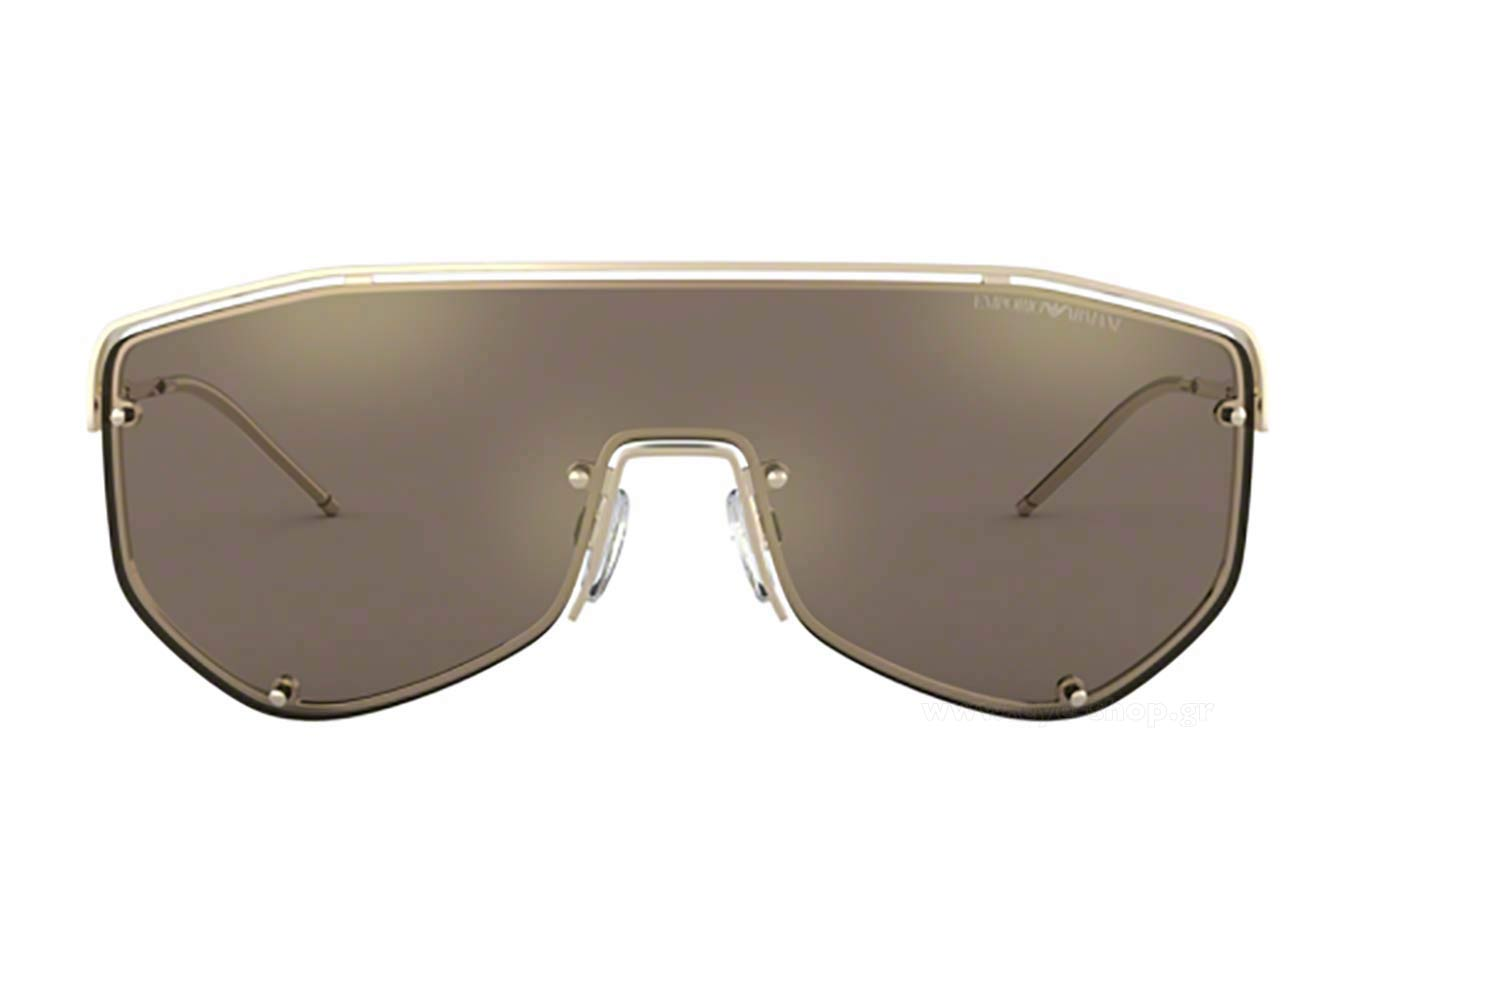 3719e9ee230e EMPORIO ARMANI 2072 30135A 39 | SUNGLASSES Men 2019 EyeShop